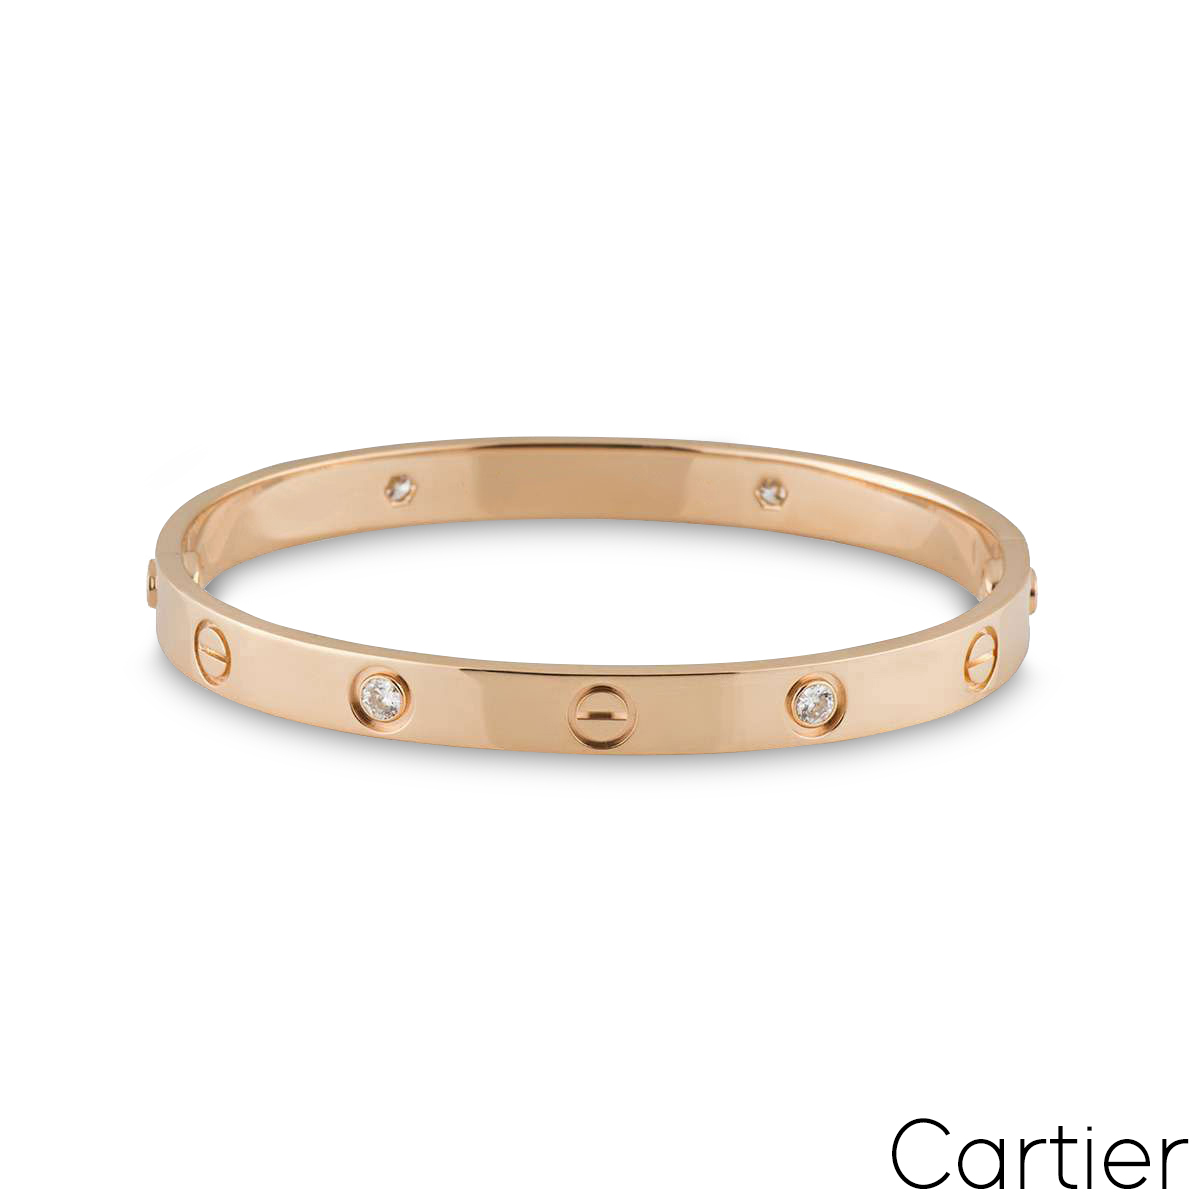 Cartier Rose Gold Half Diamond Love Bracelet Size 19 B6036019